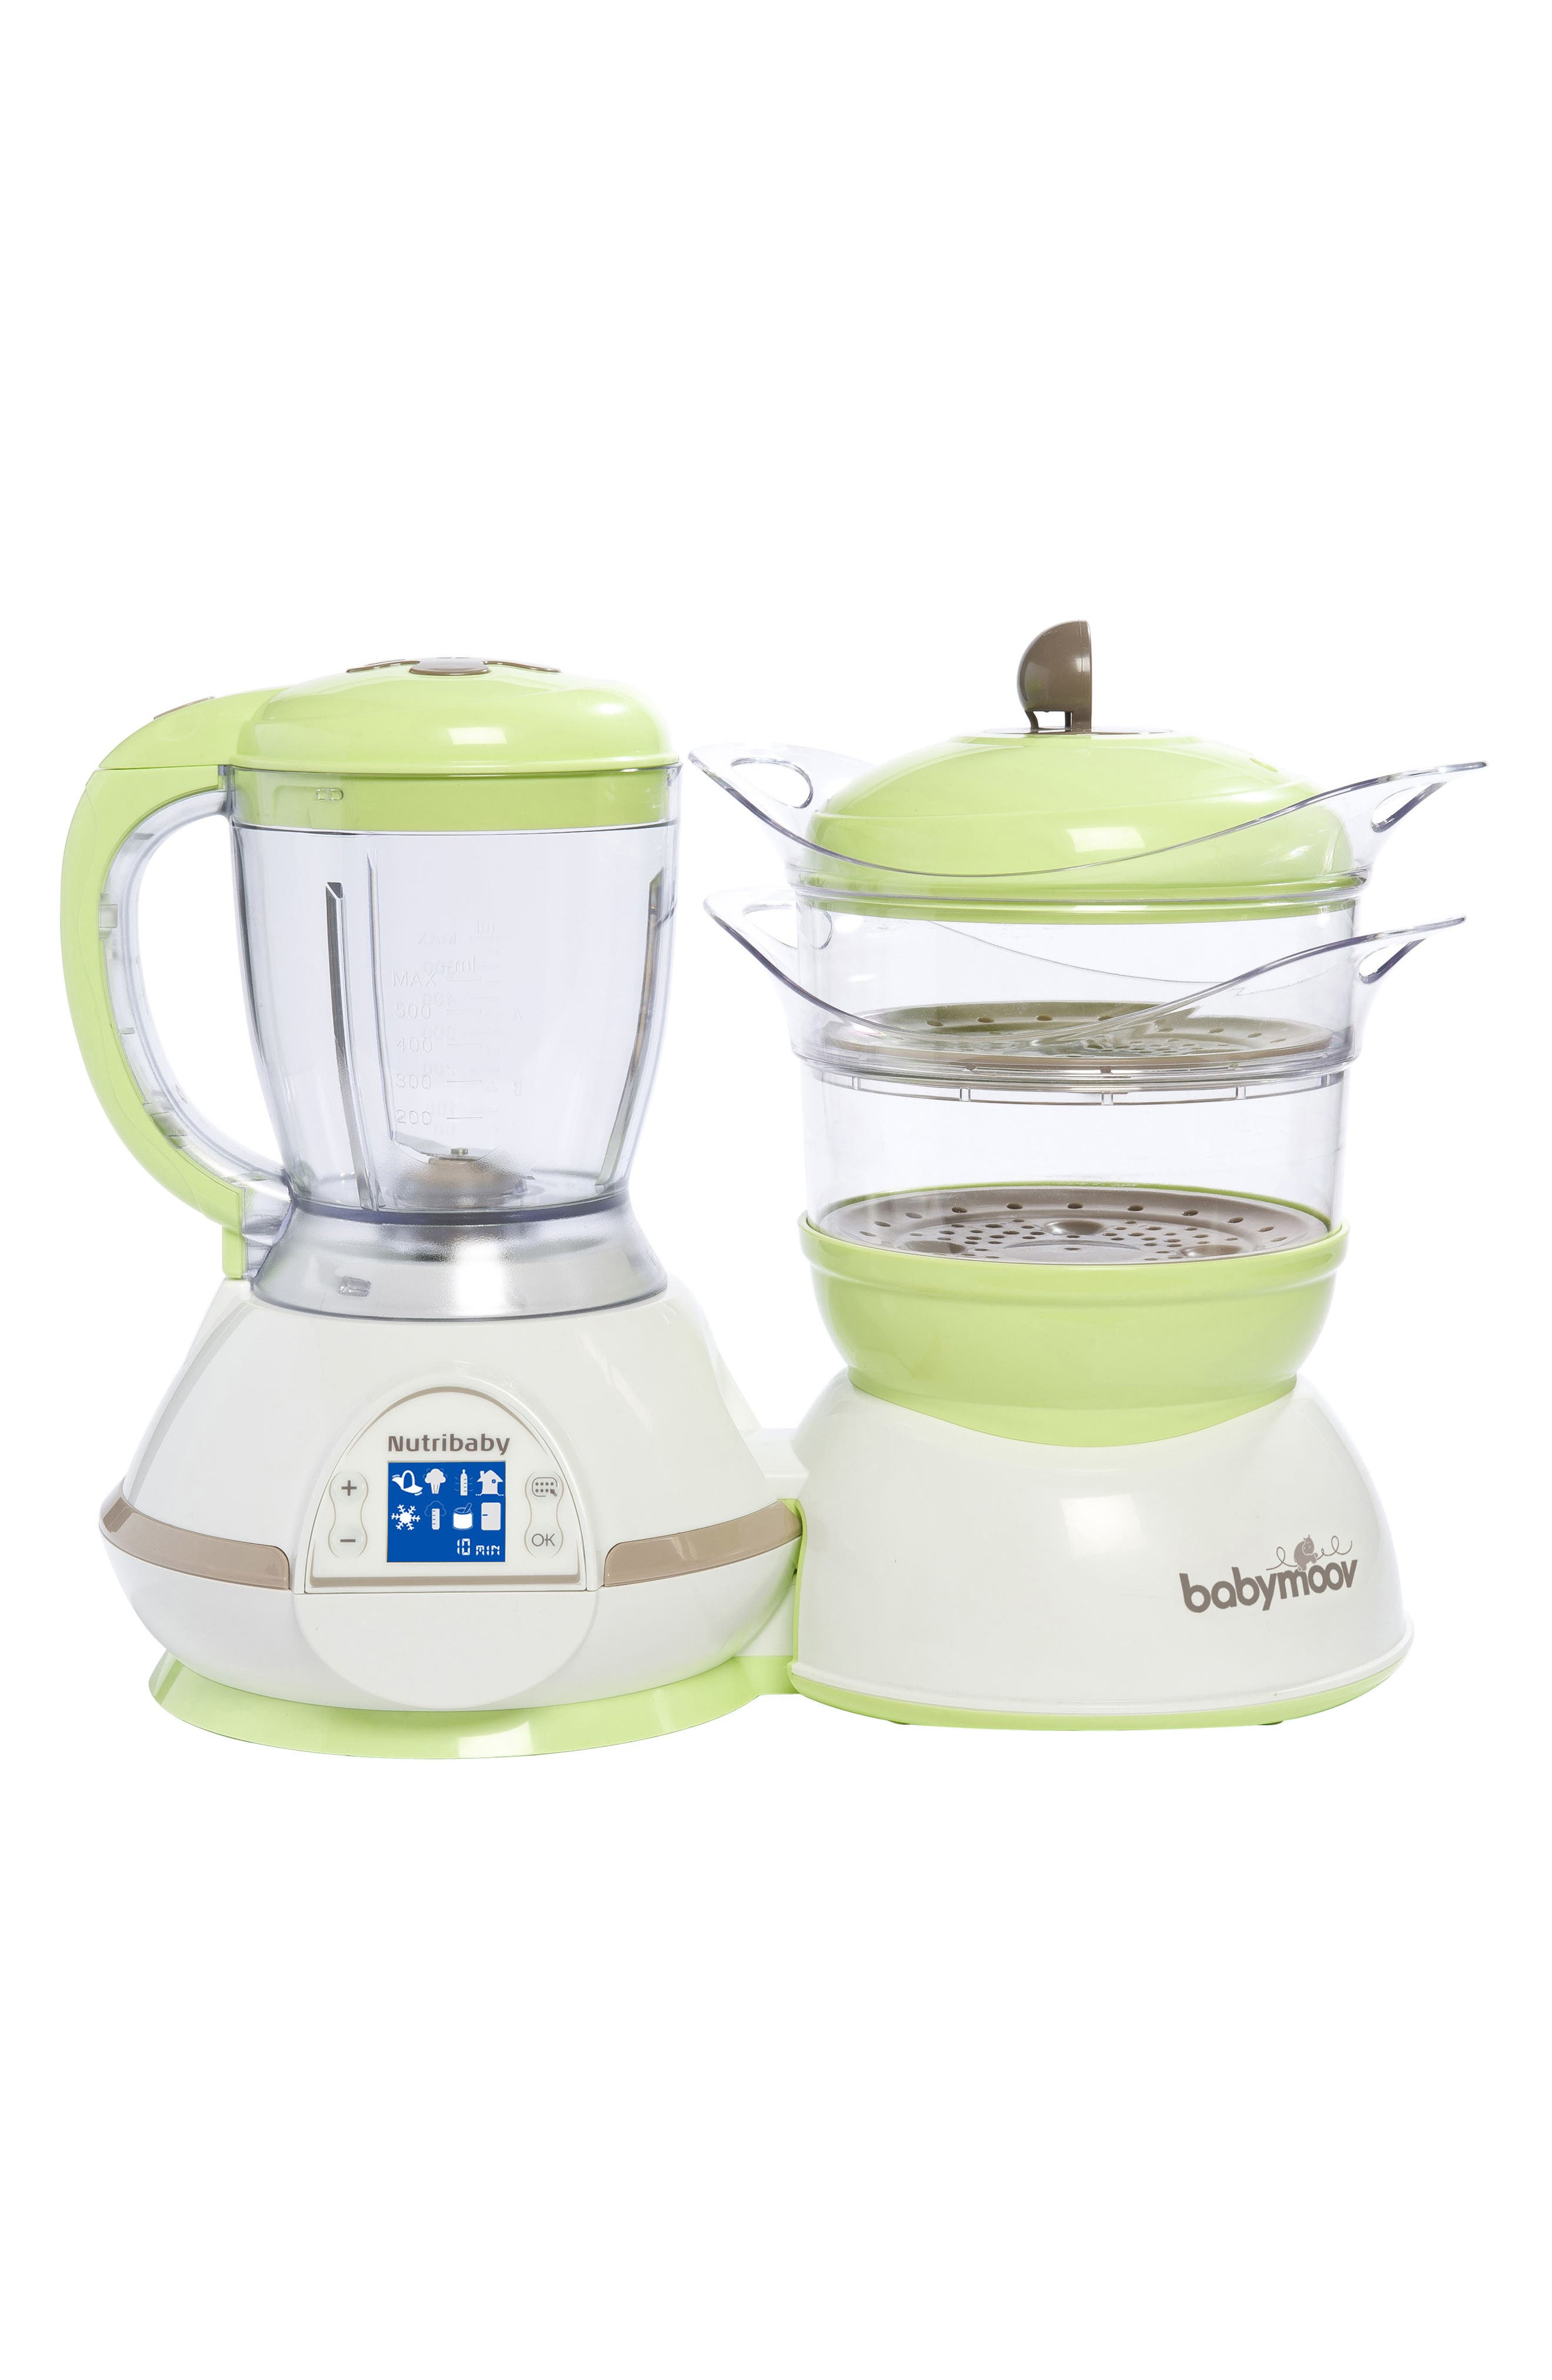 Infant Babymoov Nutribaby 5In1 Baby Food Maker Size One Size  Green